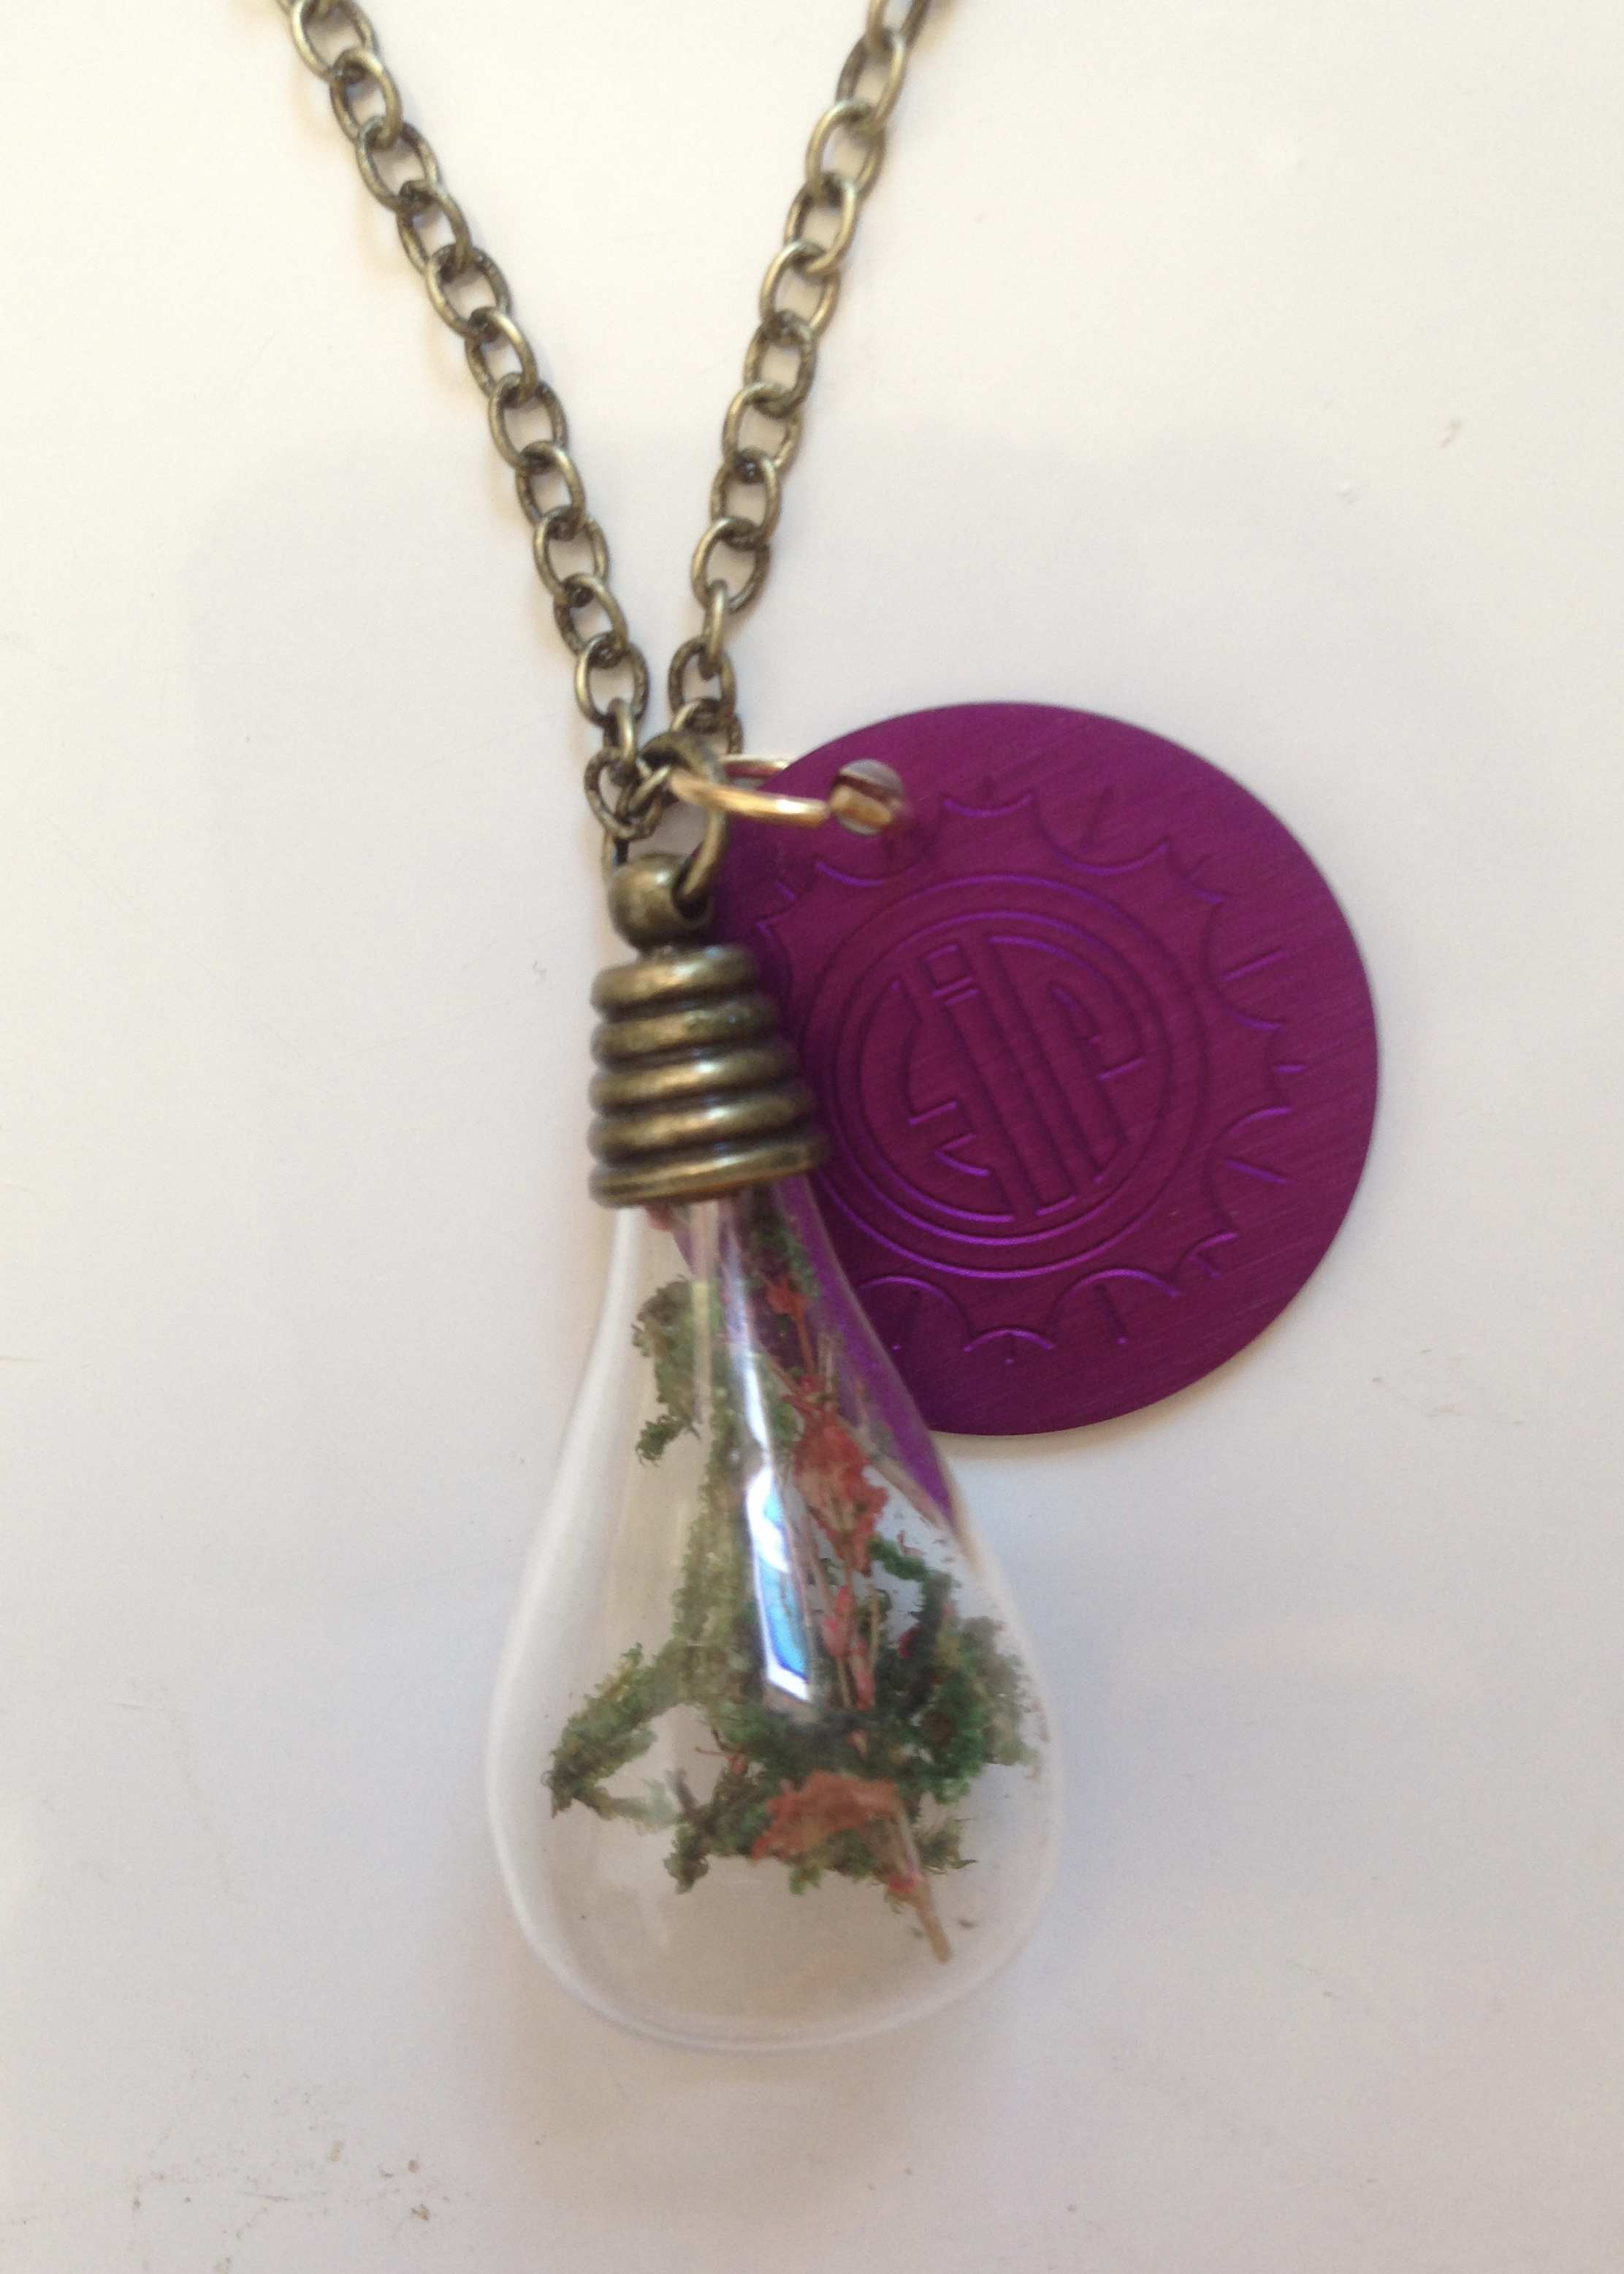 SALE: Mini Terrariam Necklace with Purple Disk